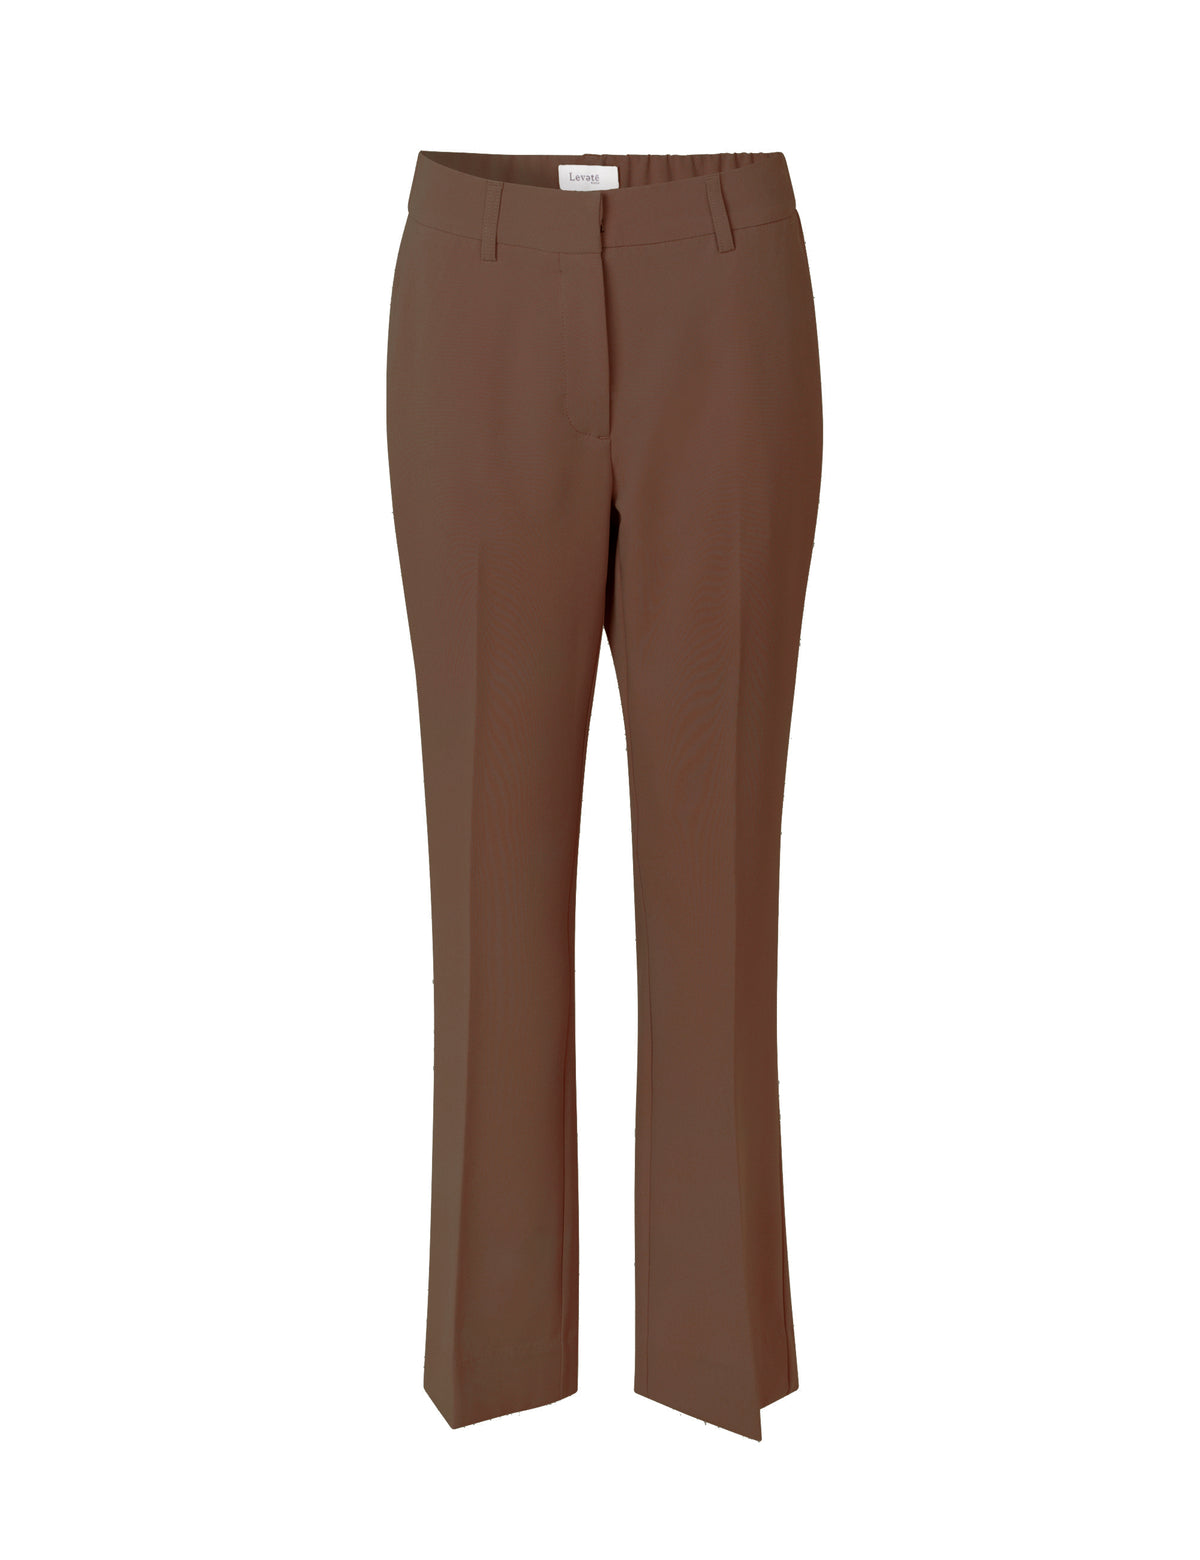 Helena Tapered Pants - Carafe